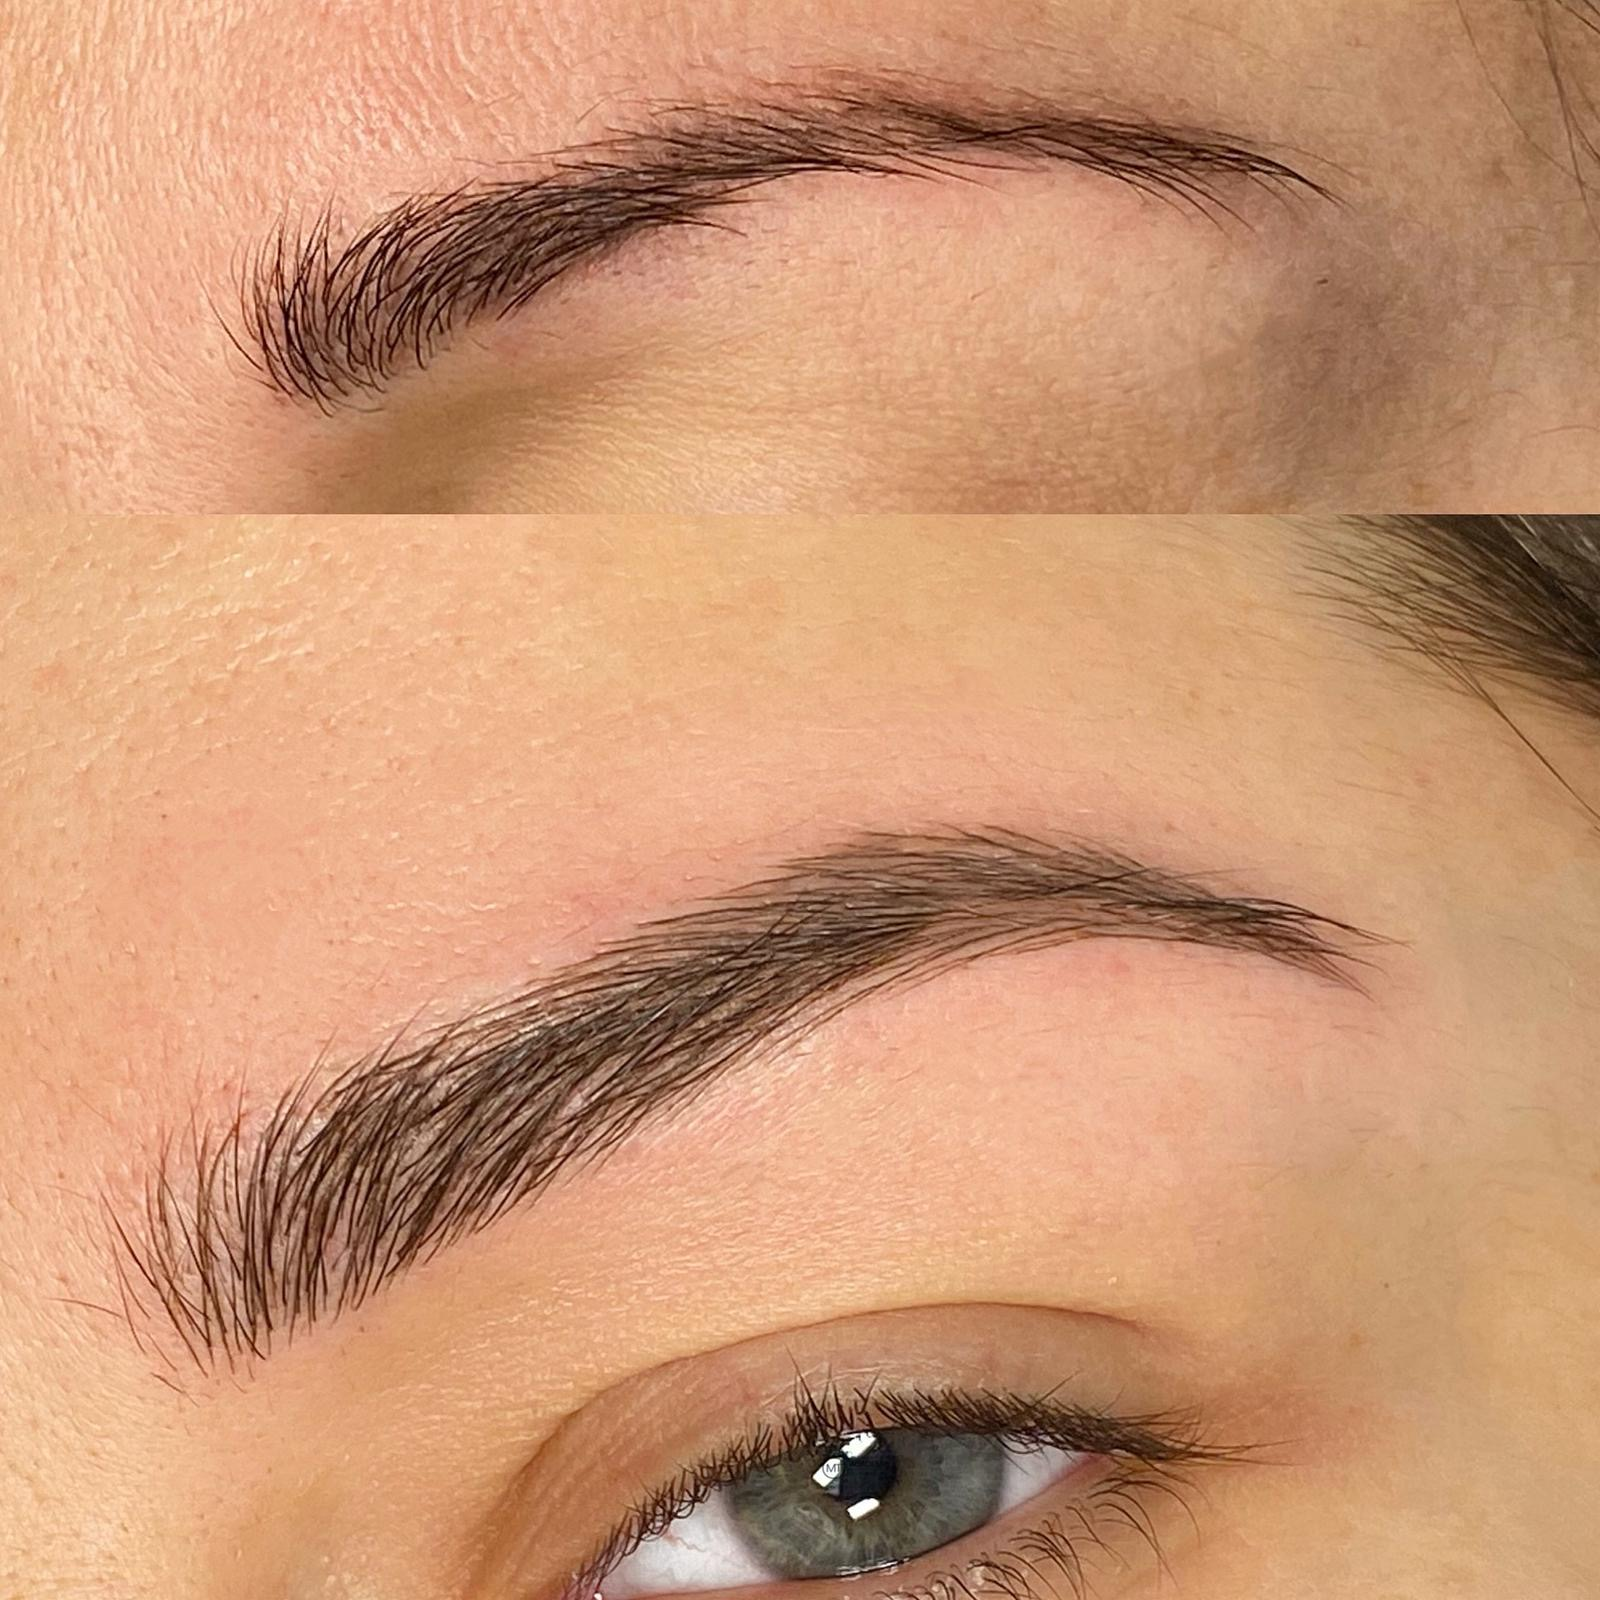 This image shows a woman's eyebrows meticulously done.